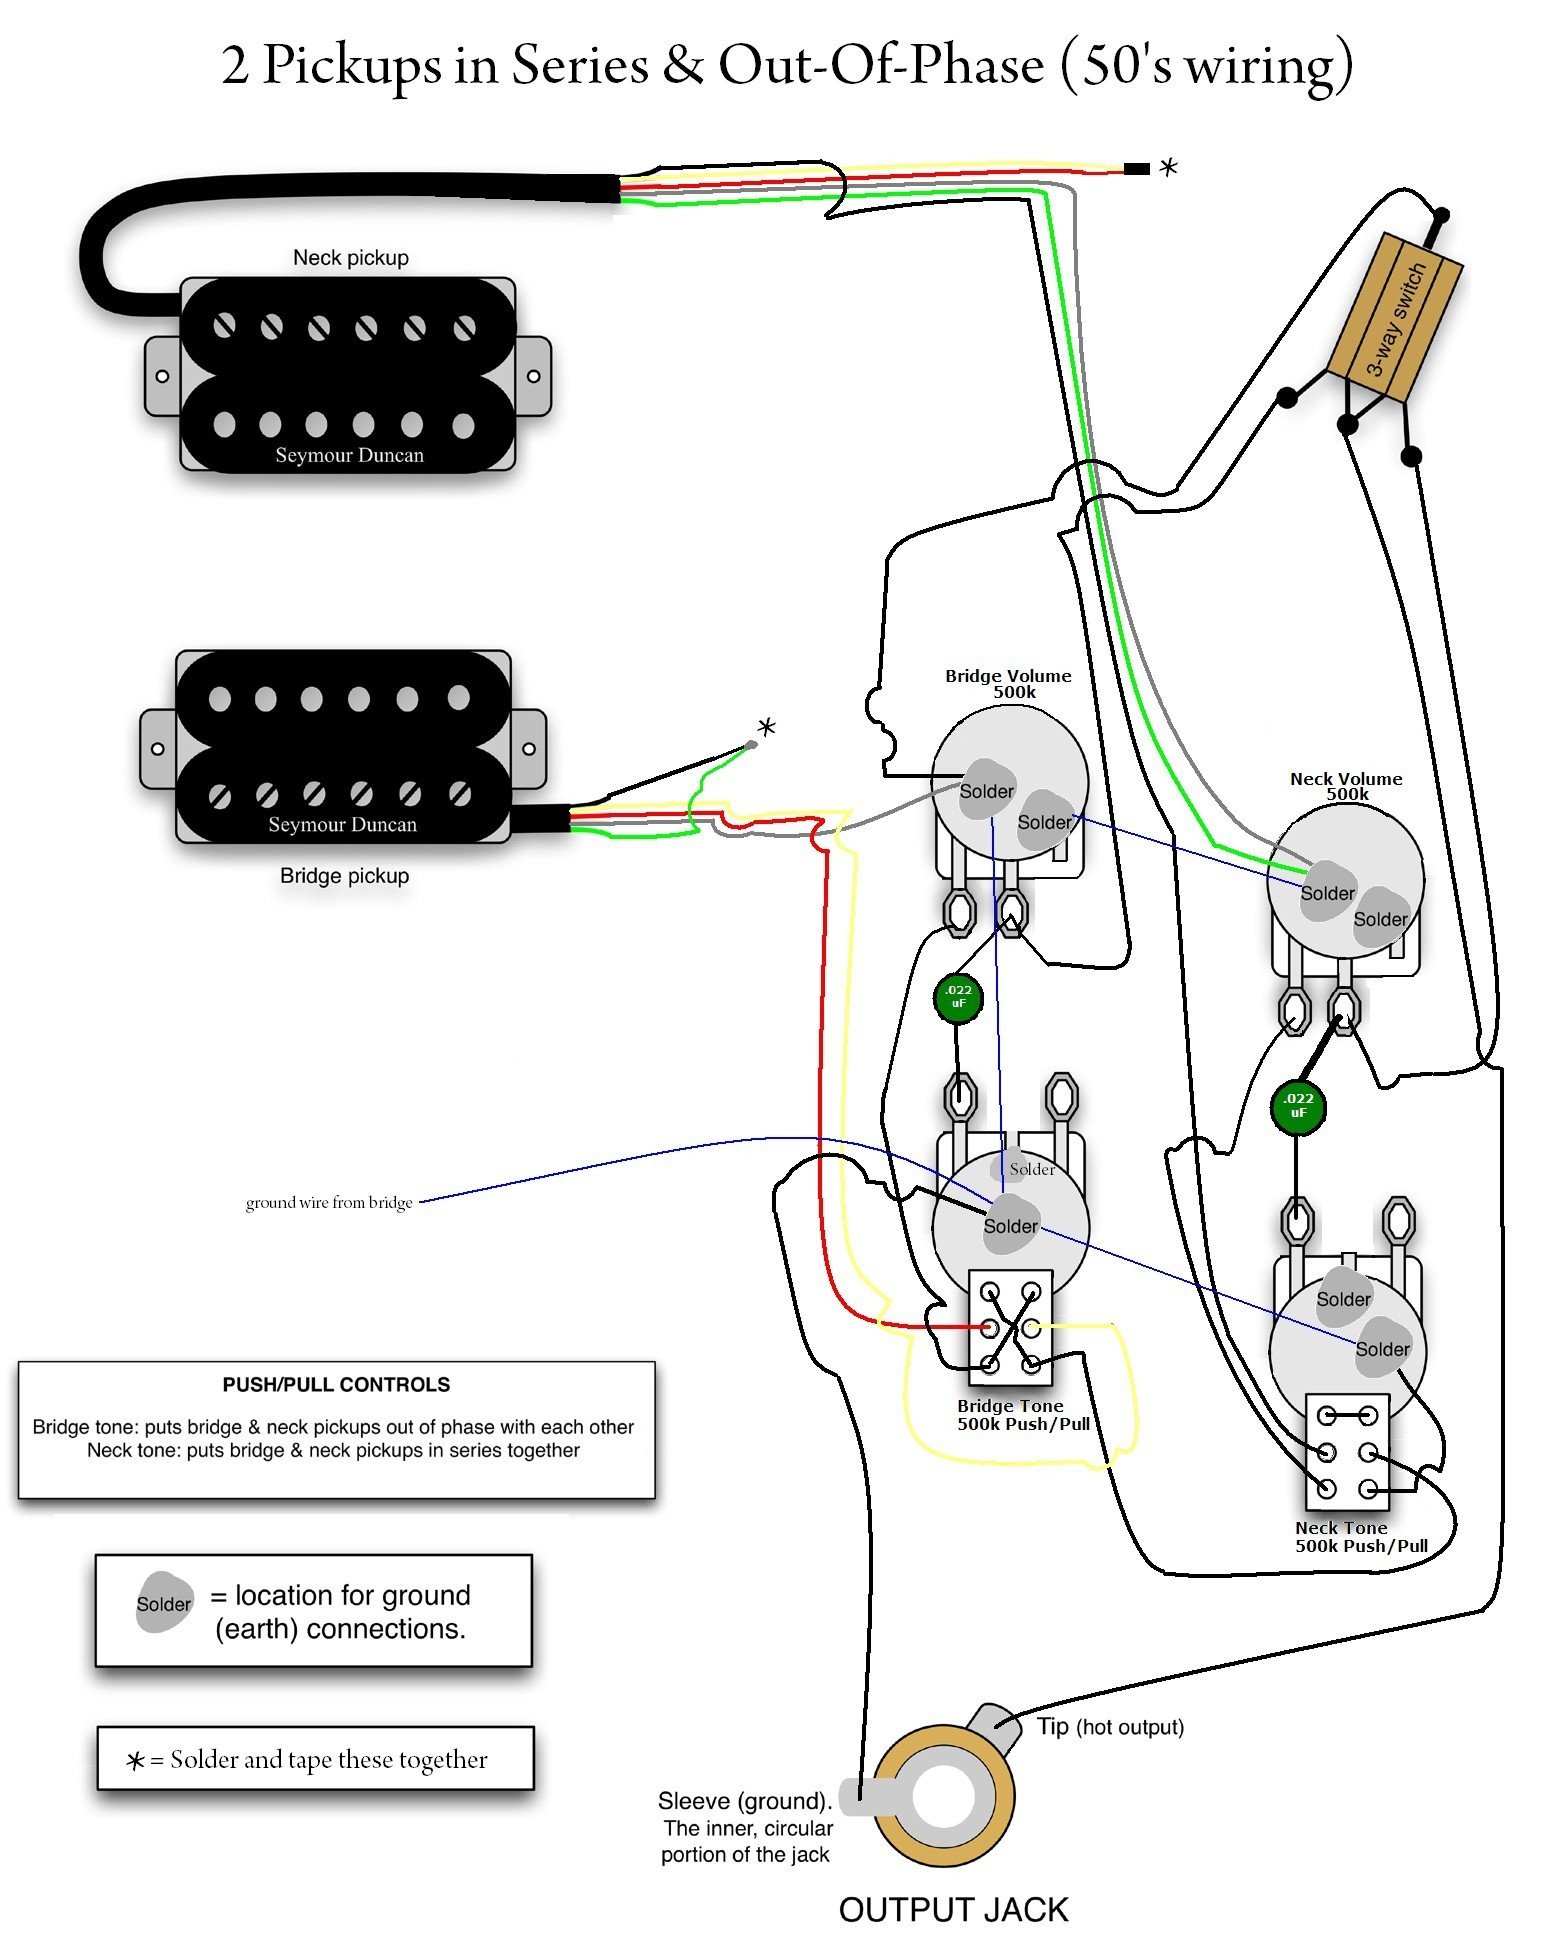 Epiphone Les Paul Wiring Diagram Emg | Schematic Diagram on epiphone sg prophecy ex, epiphone prophecy gx, gibson prophecy ex, les paul custom prophecy ex, epiphone les paul prophecy sapphire, epiphone prophecy les paul custom red, epiphone prophecy les paul review, epiphone les paul custom ex,